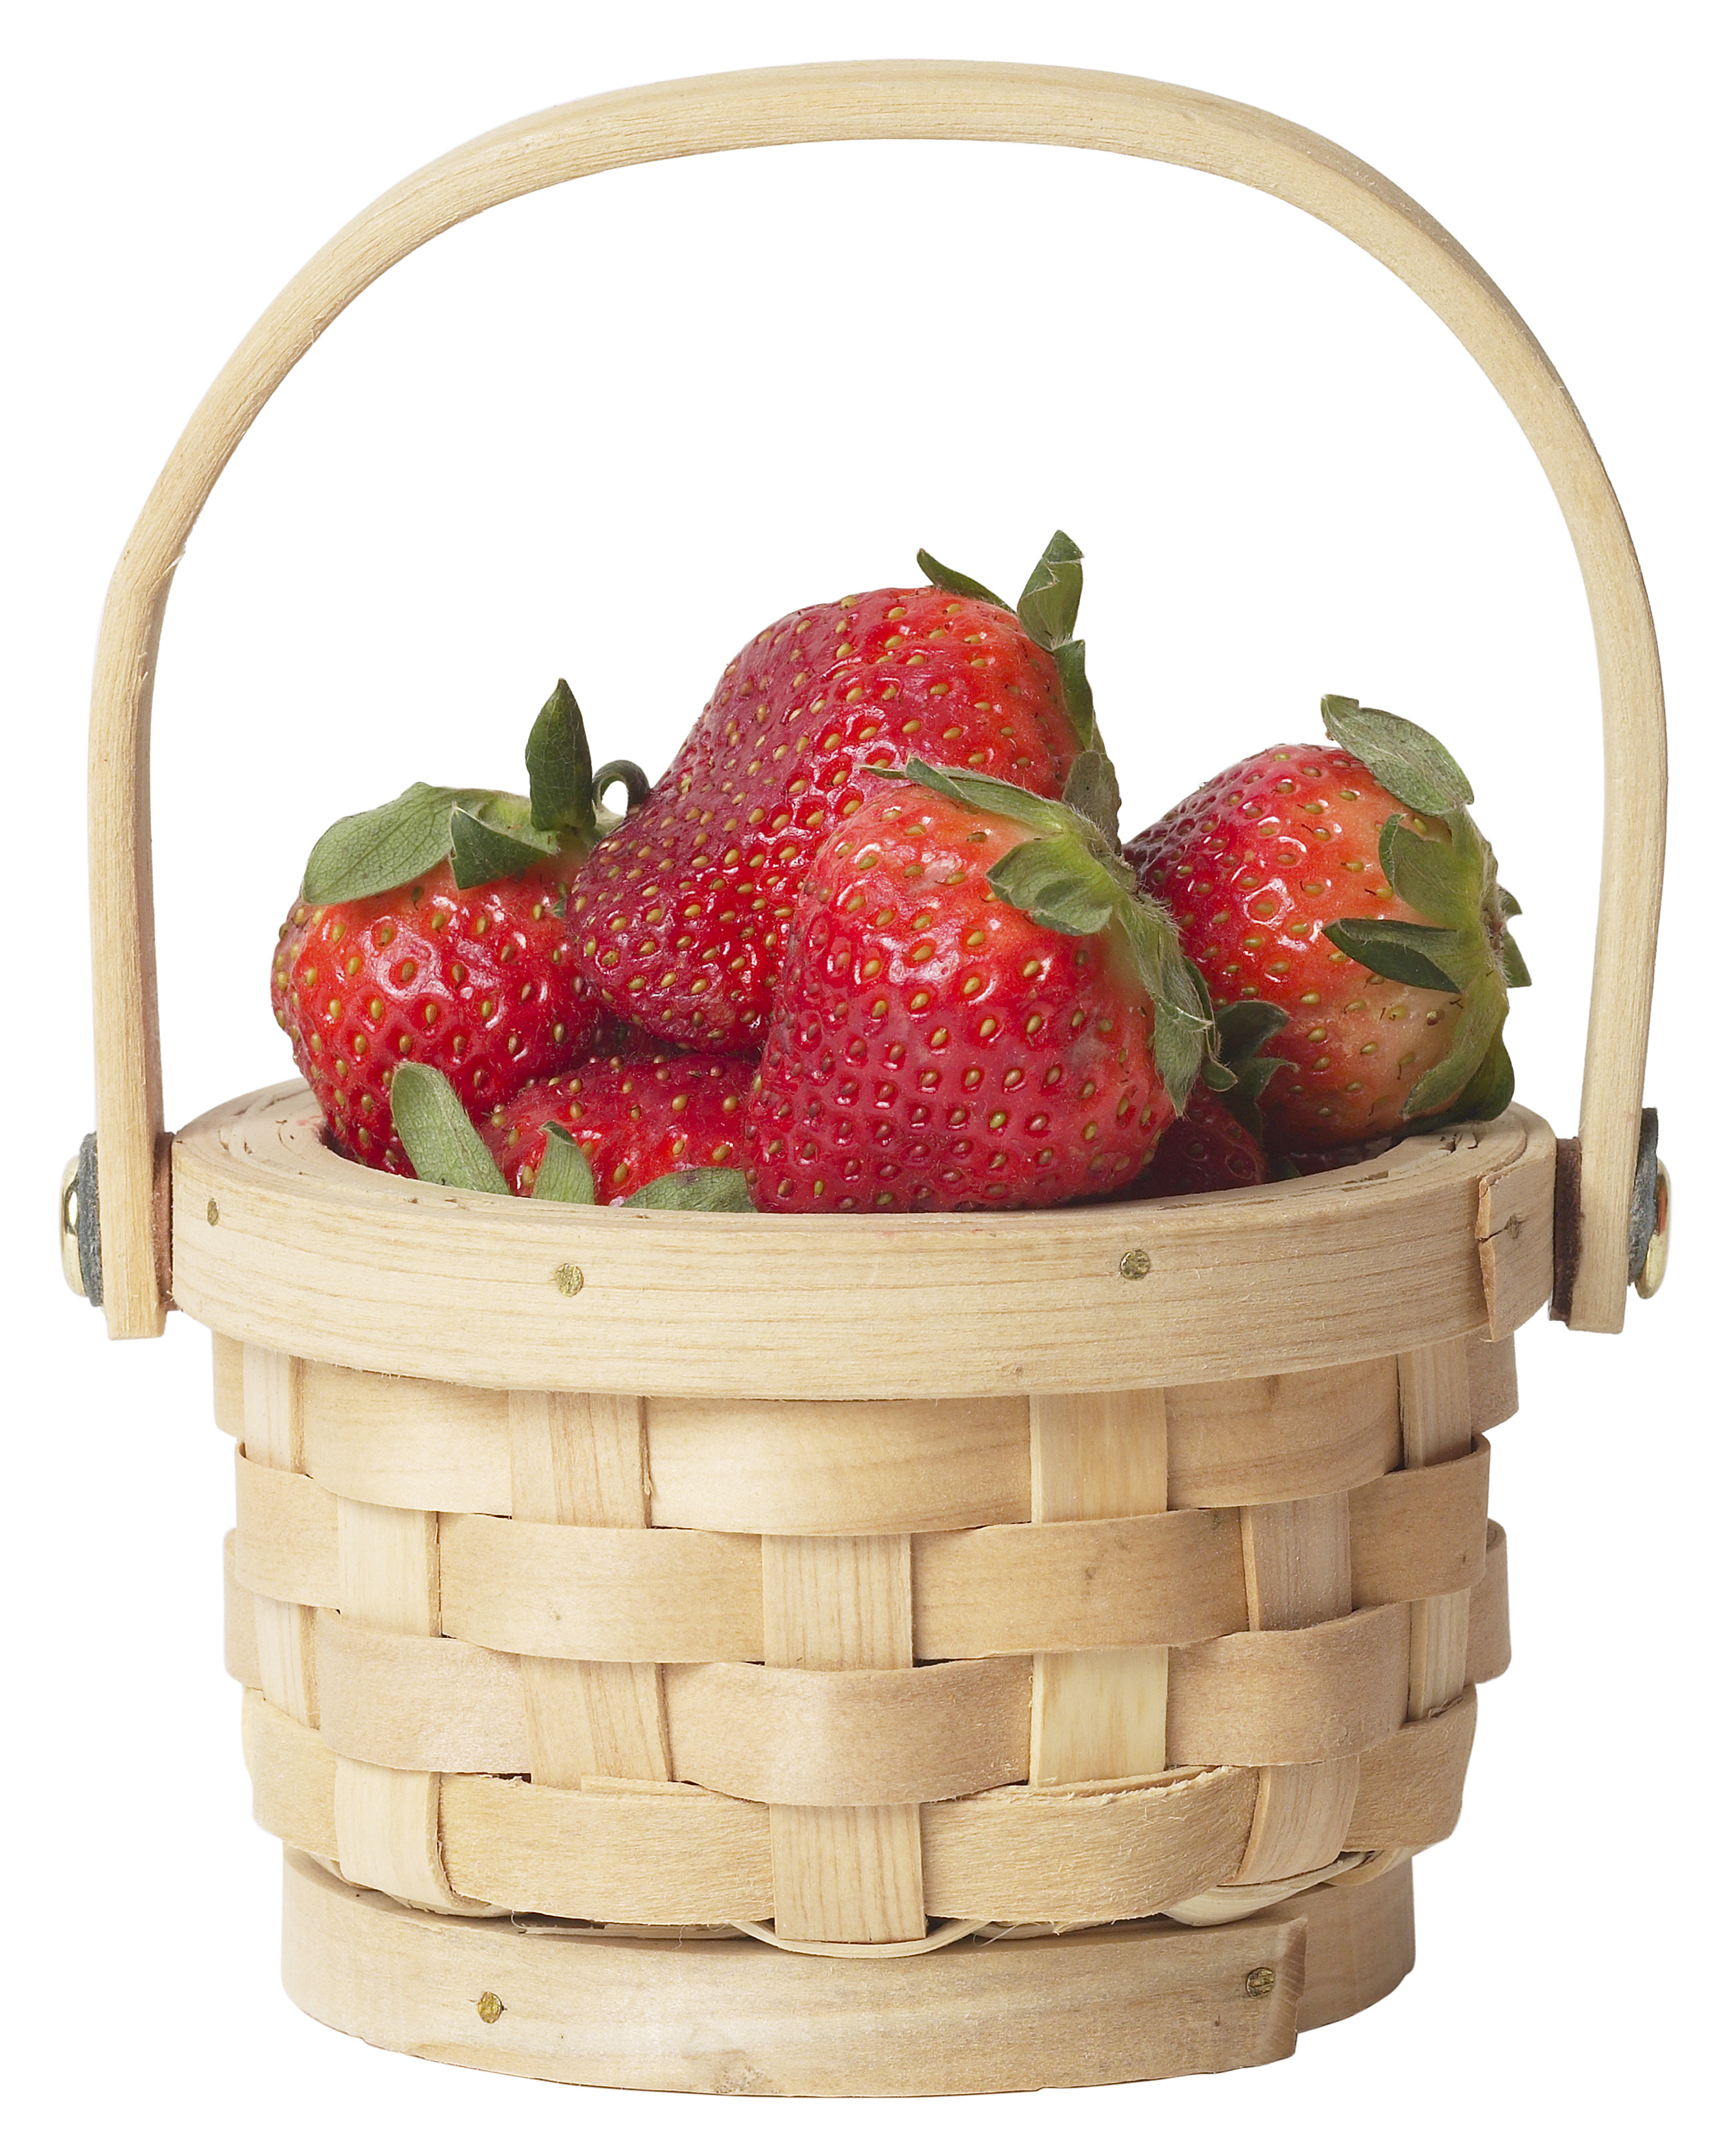 Strawberries are a nutrient-dense food.